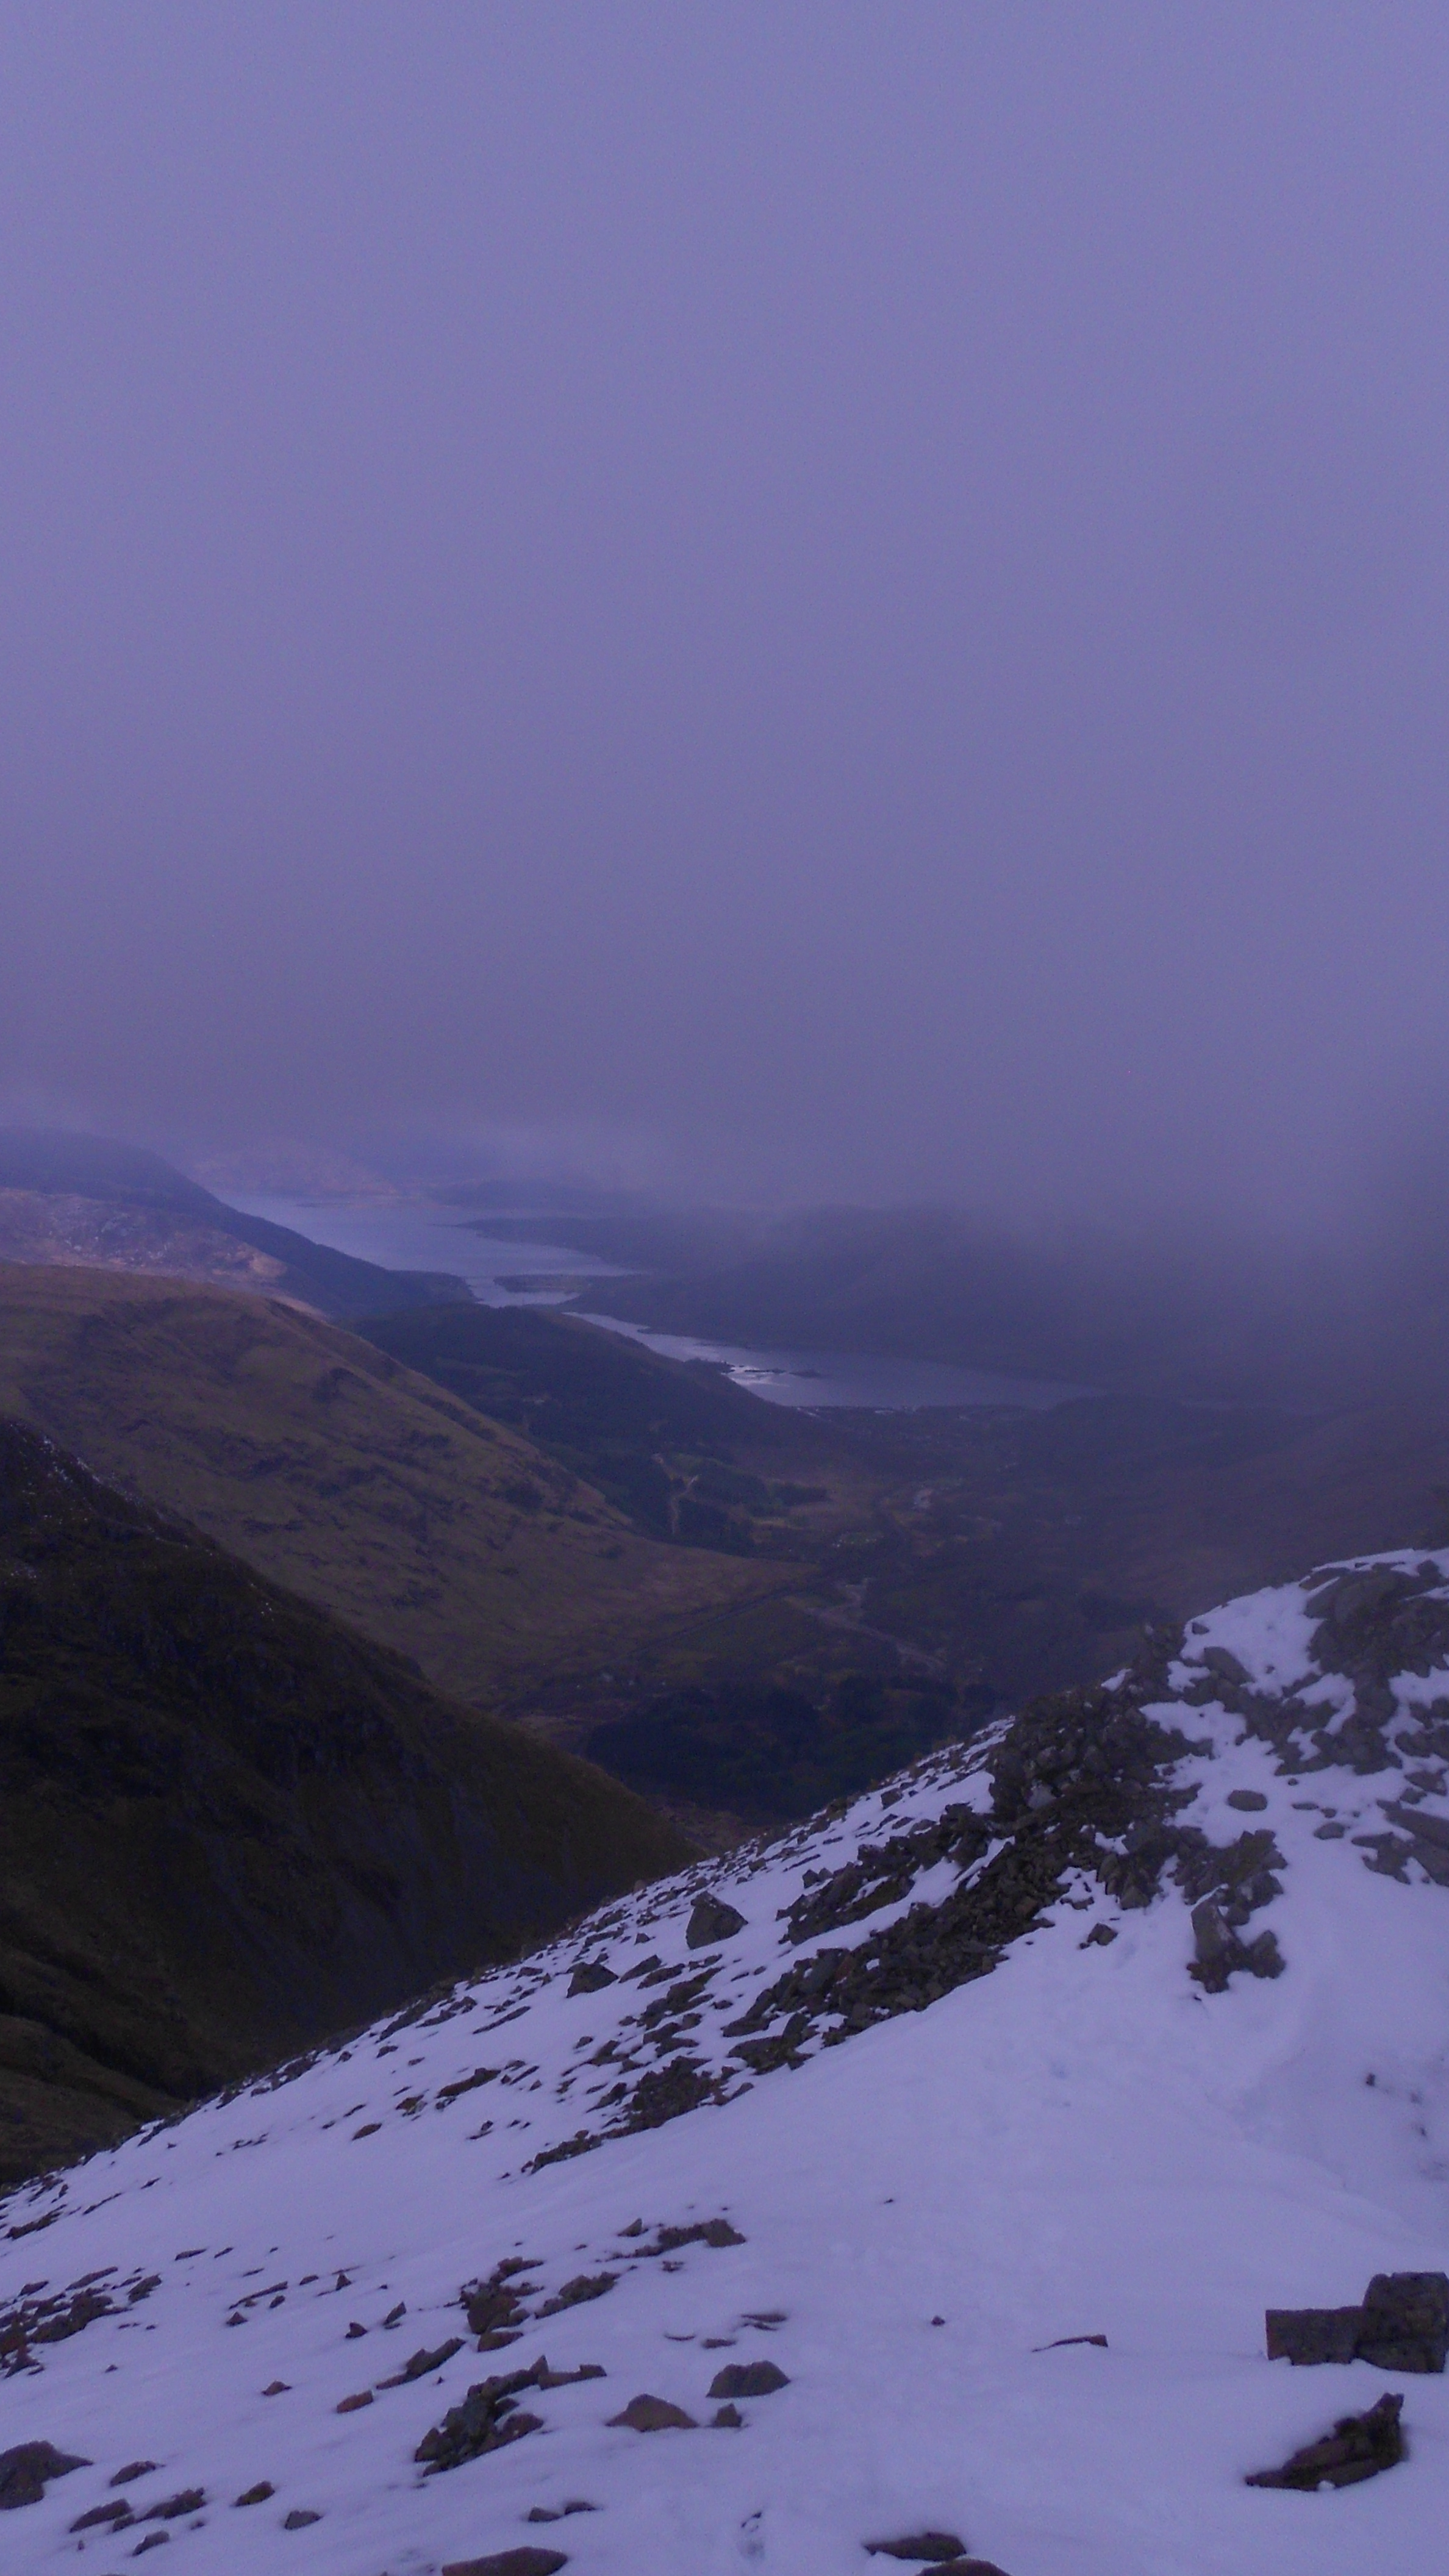 from the top of Bidean nam Bian, Glencoe, Scotland, Apr. 21, 2012